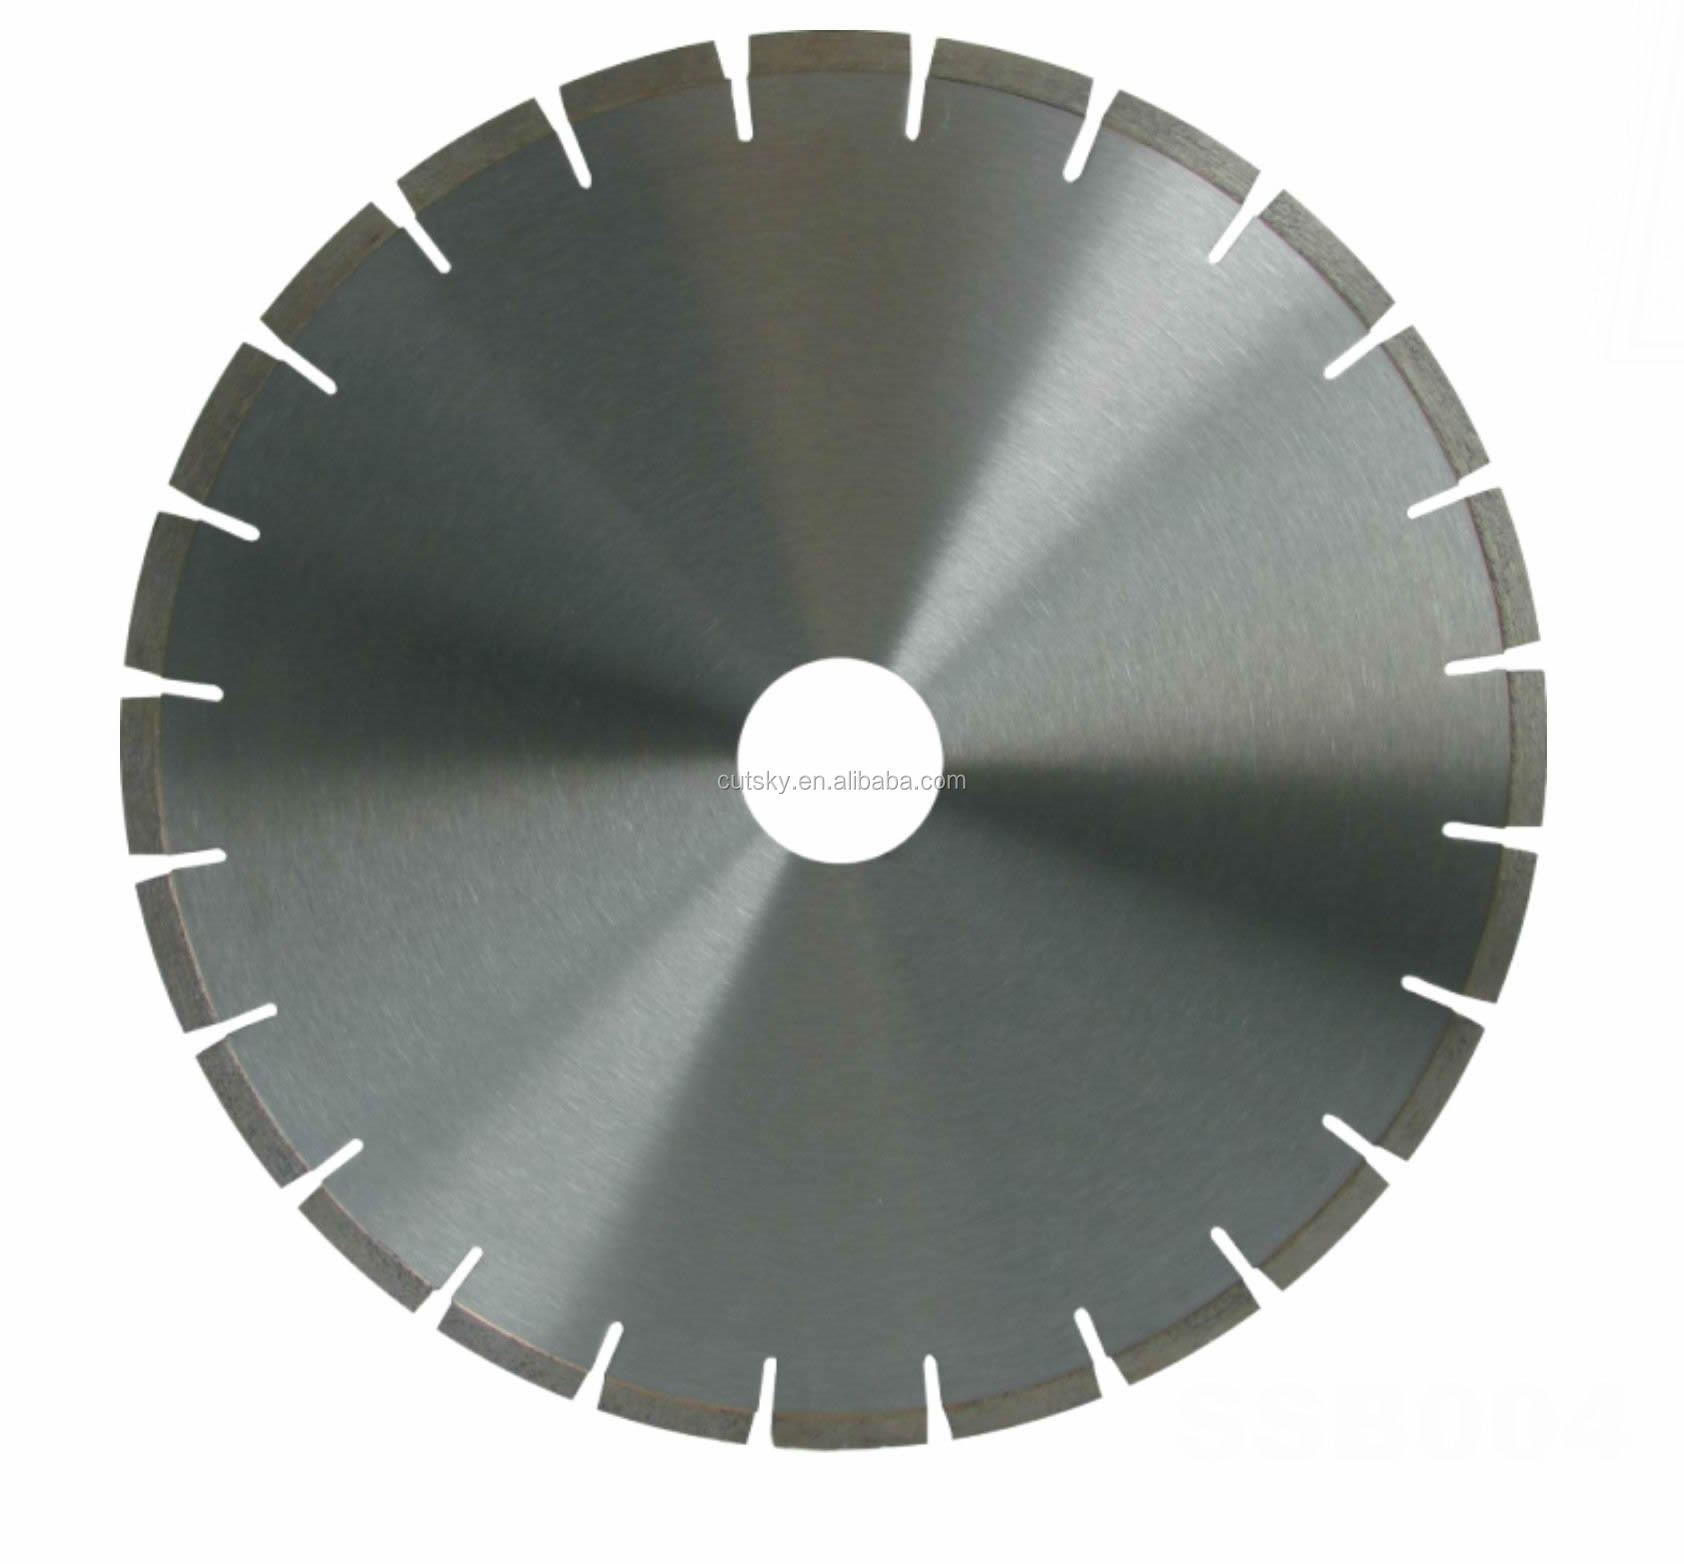 "14"" Welded Diamond Saw Blades for granite"